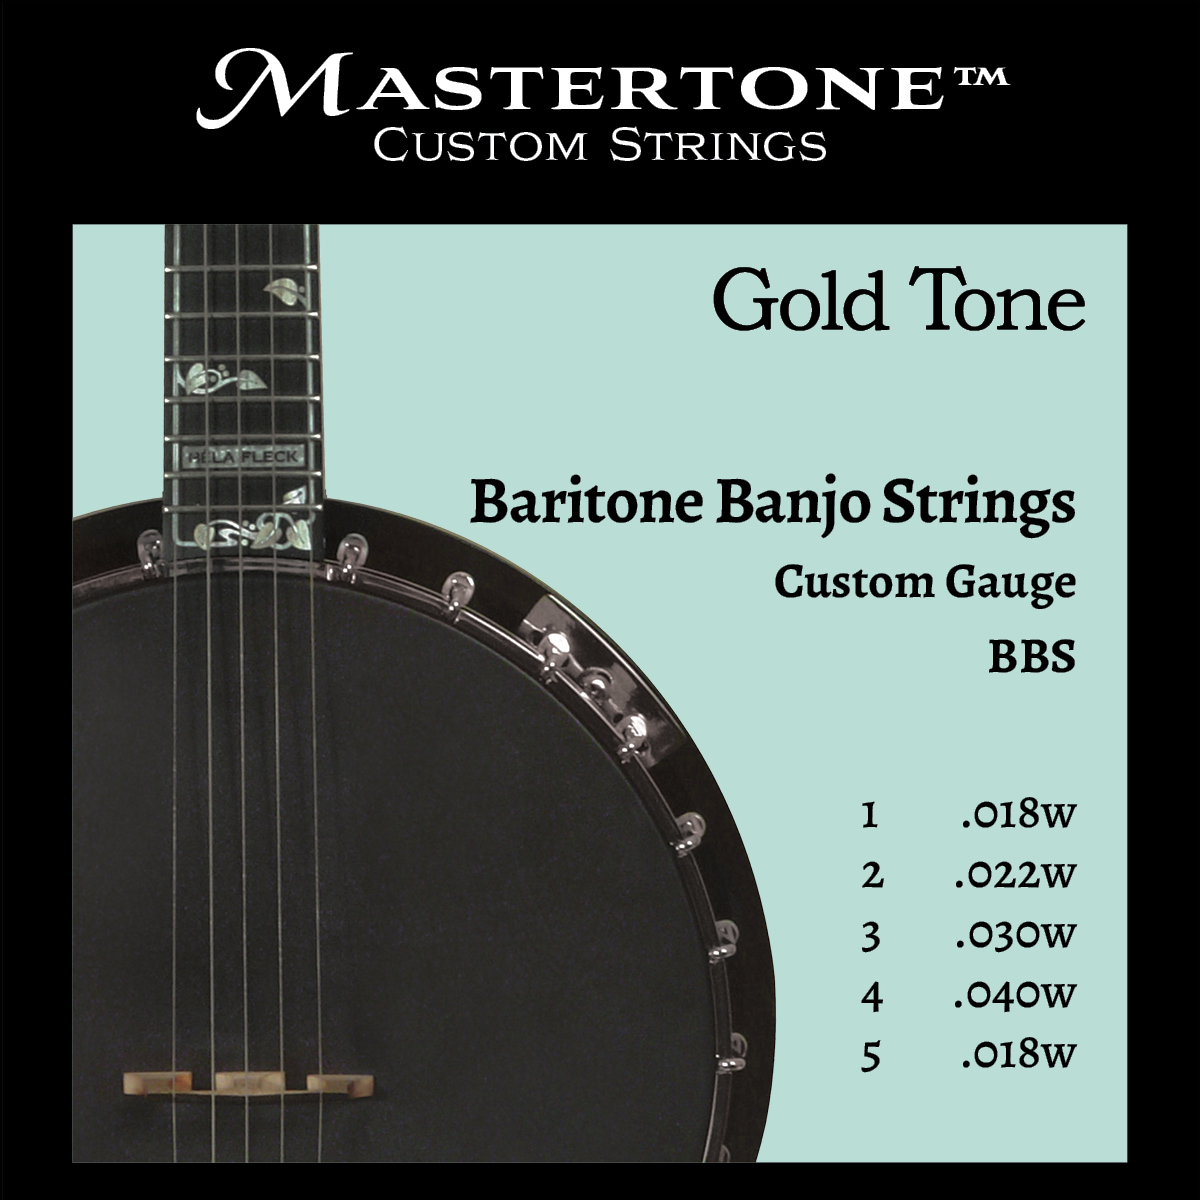 Banjo Baritone Custom Gauge Strings